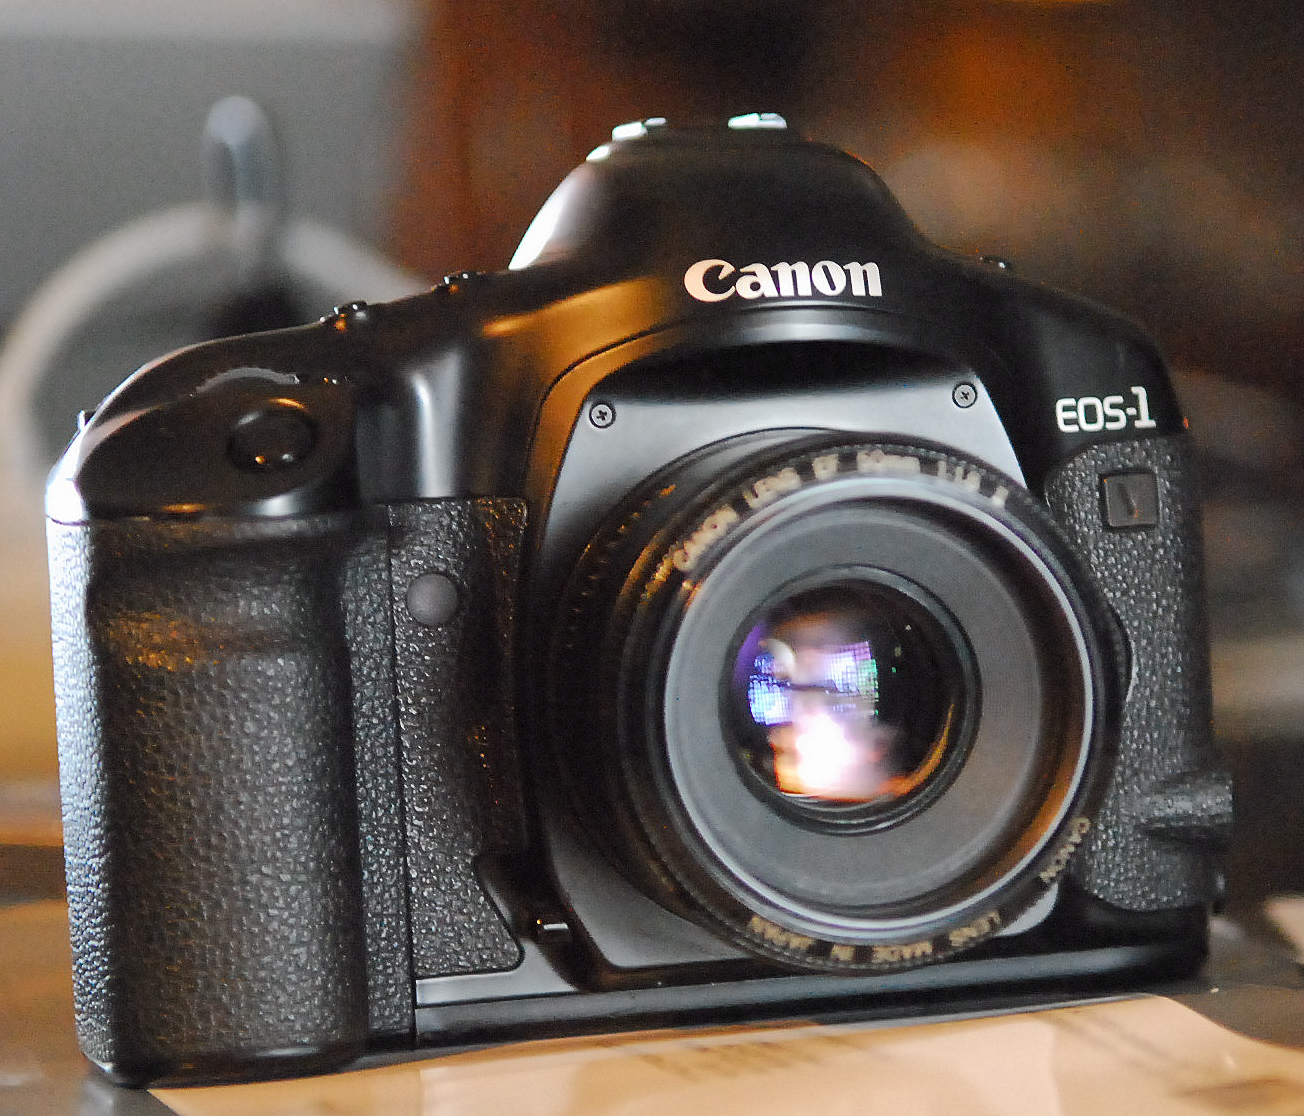 Canon EOS-1v film camera model